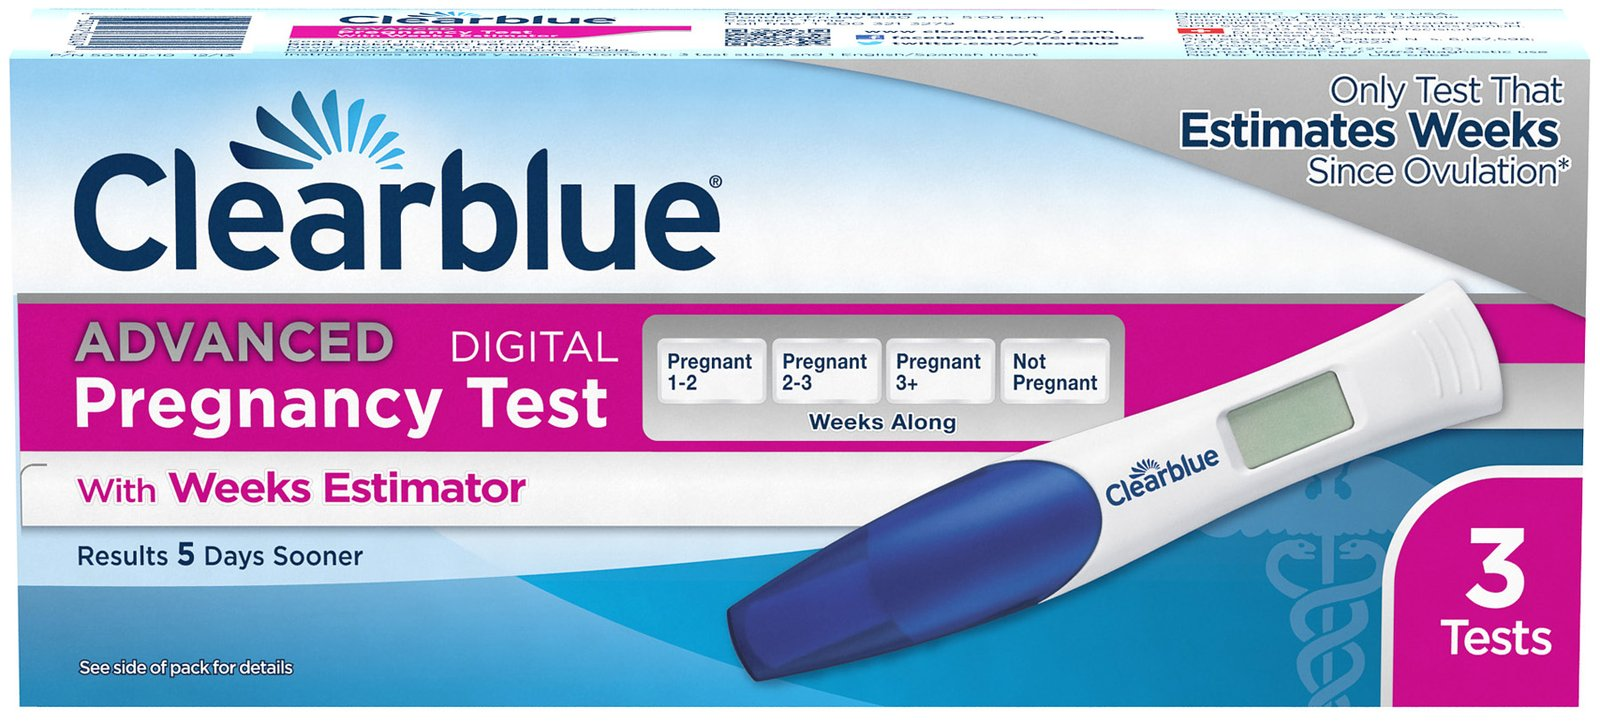 Clearblue Advanced Pregnancy Test With Weeks Estimator Reviews 2020